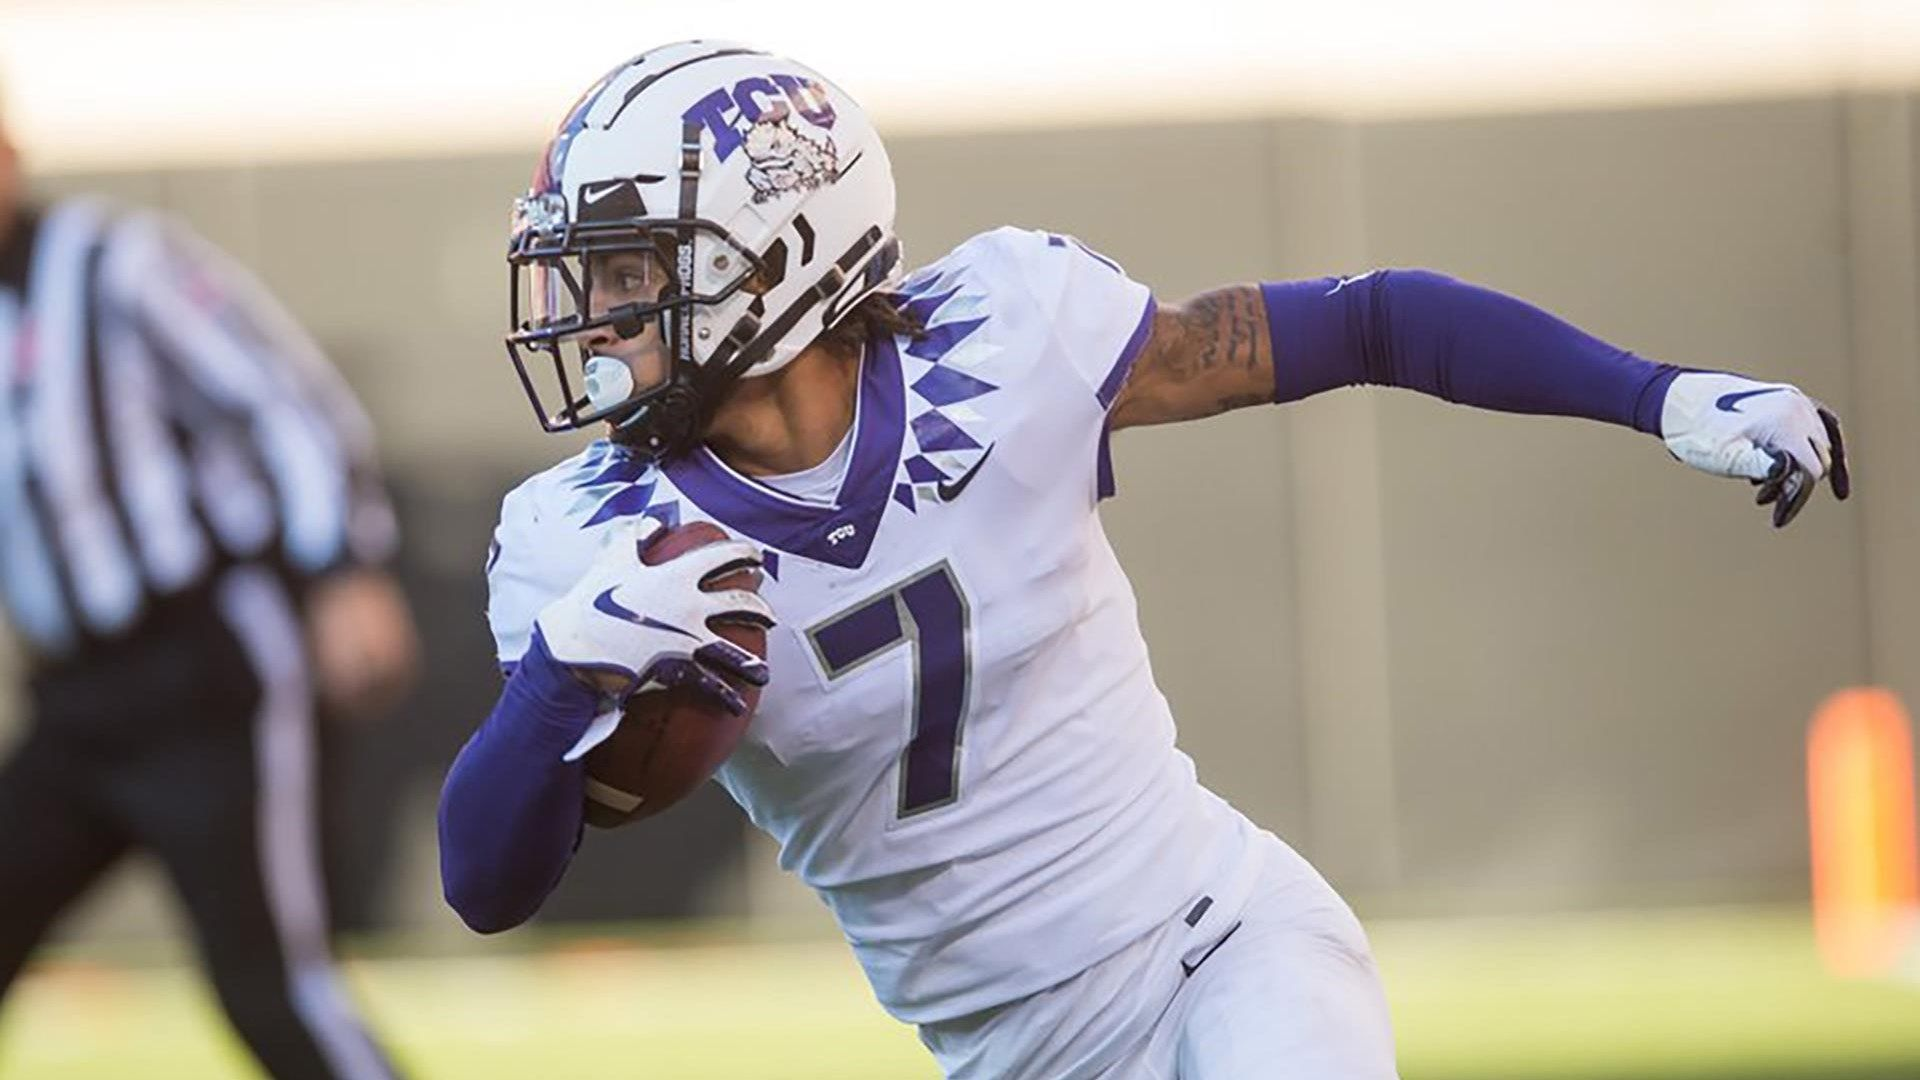 TCU safety Trevon Moehrig must improve to become top safety | PFN